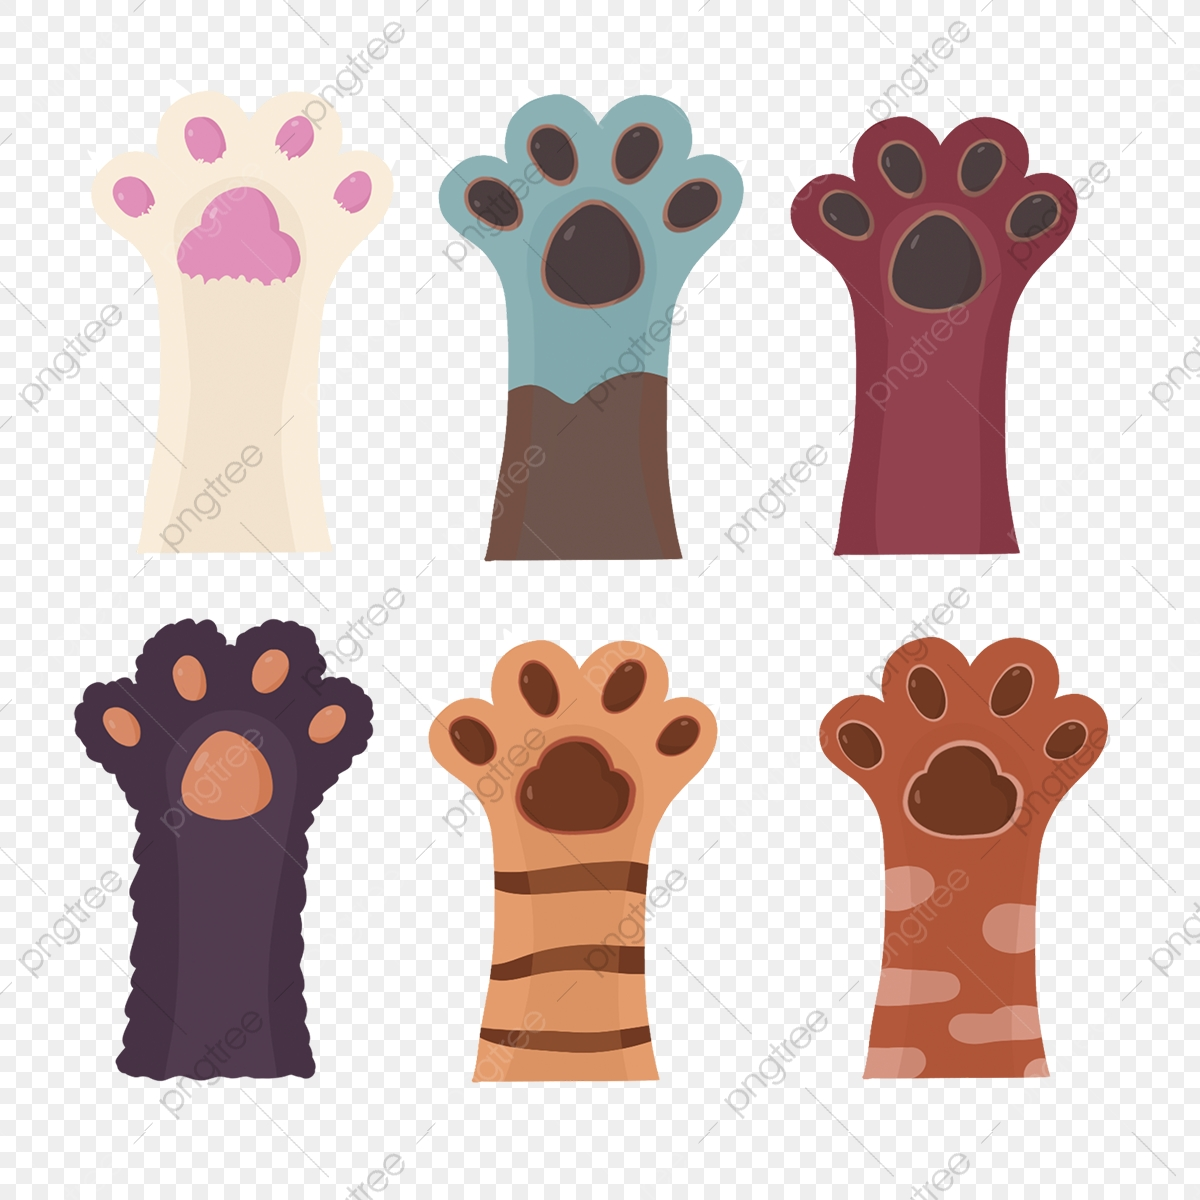 Cute Cat Paw Clipart Cat Paw Claw Cat Png Transparent Clipart Image And Psd File For Free Download